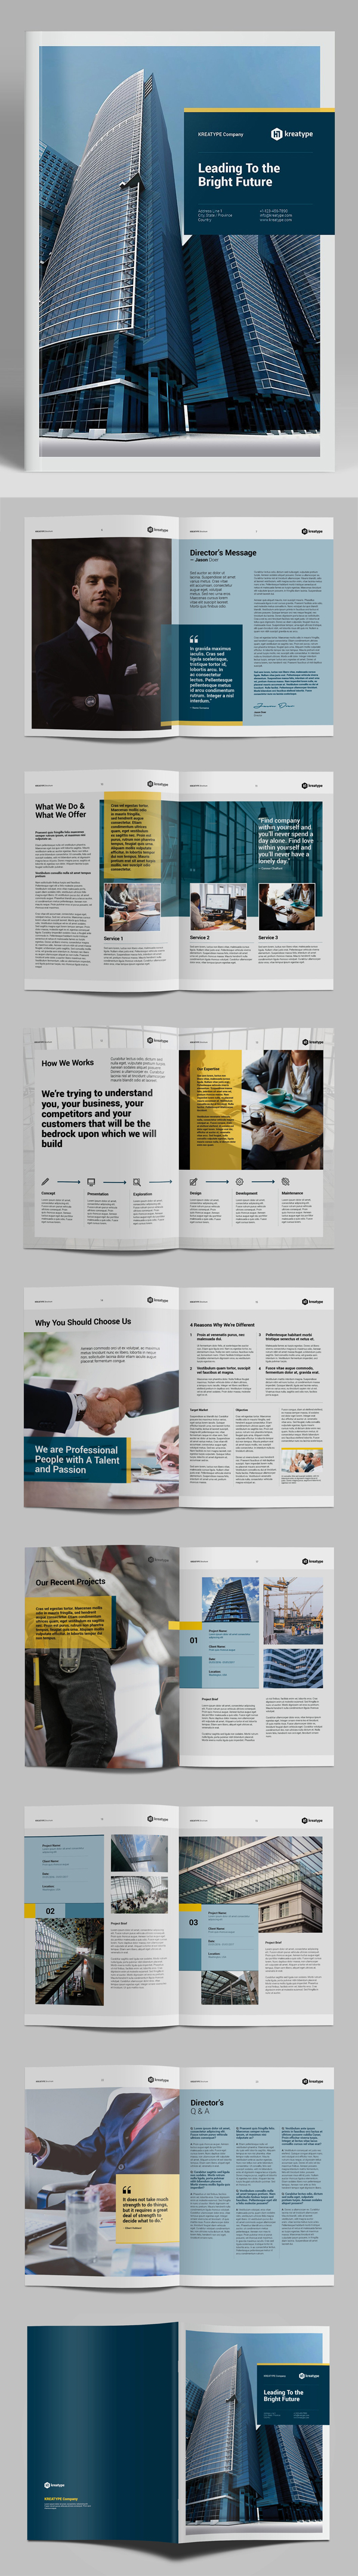 100 Professional Corporate Brochure Templates - 55